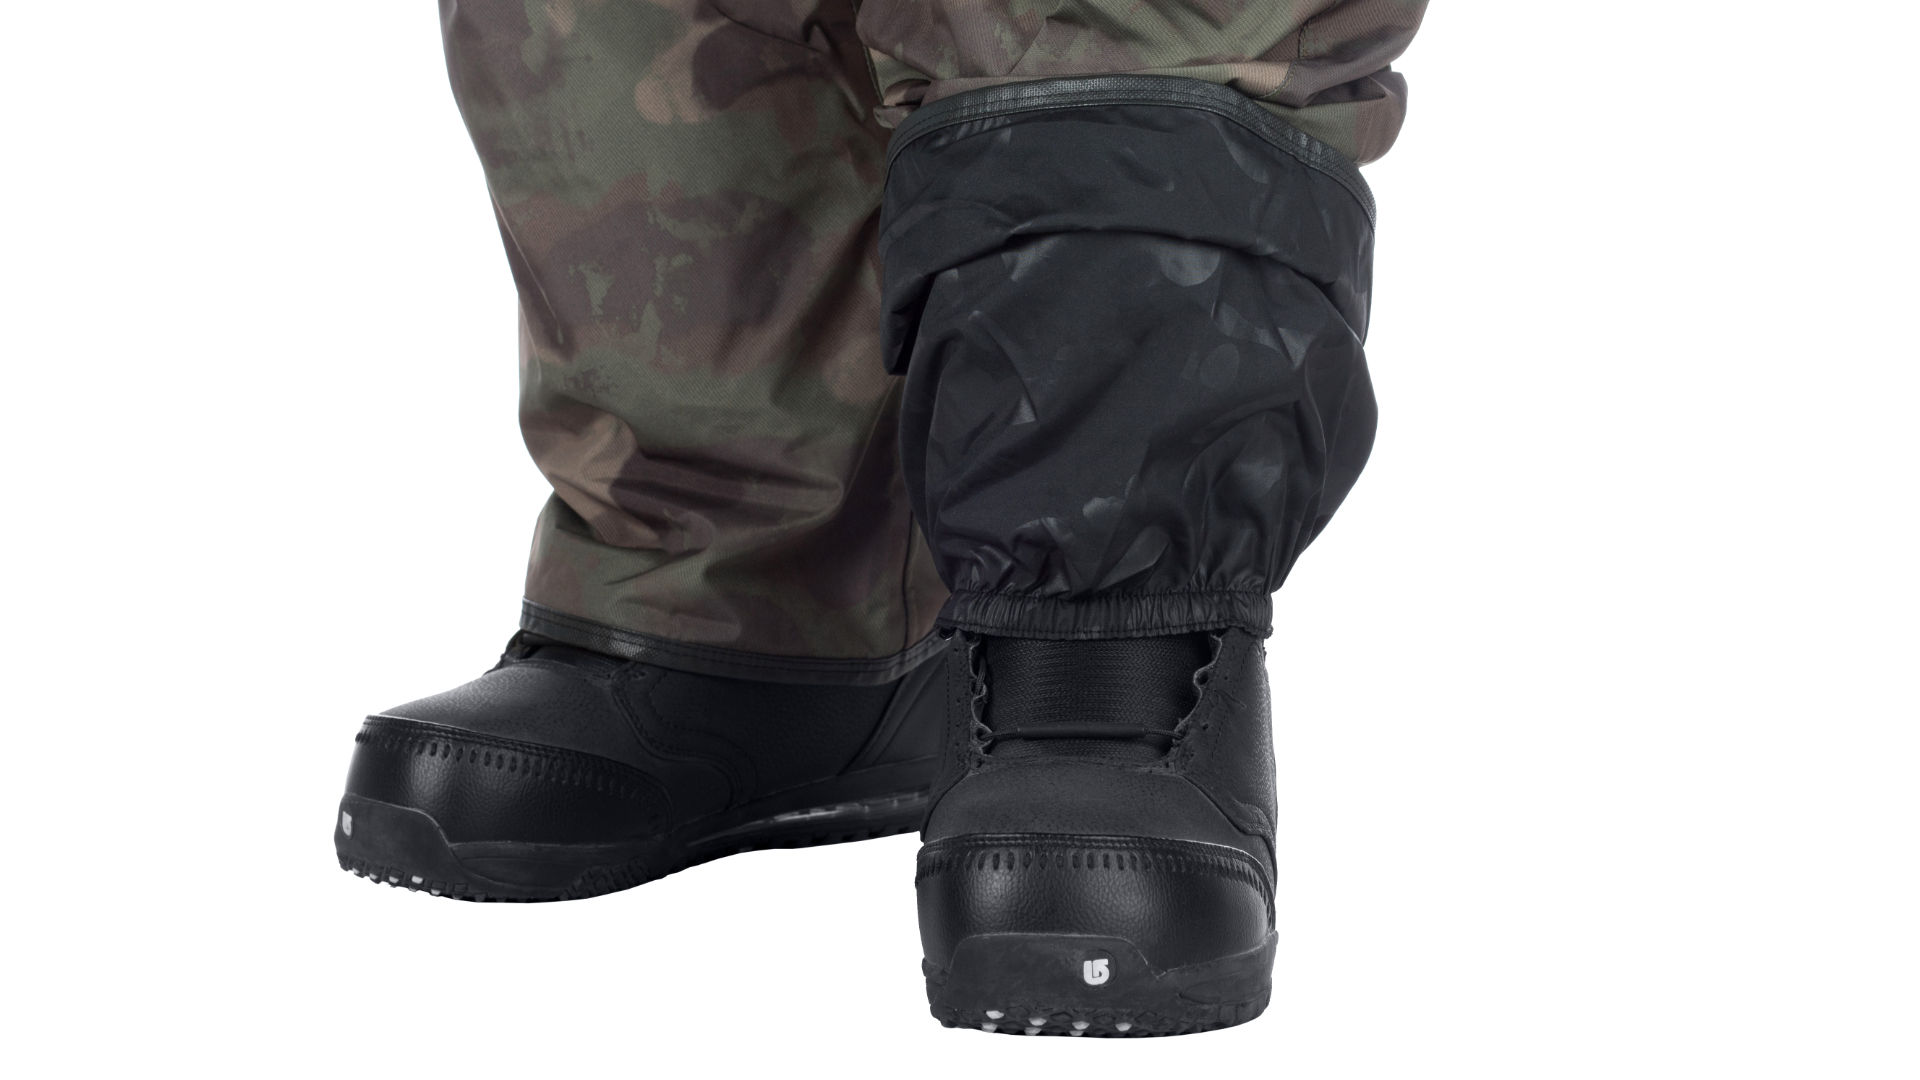 Volcom pants with boot gaiters